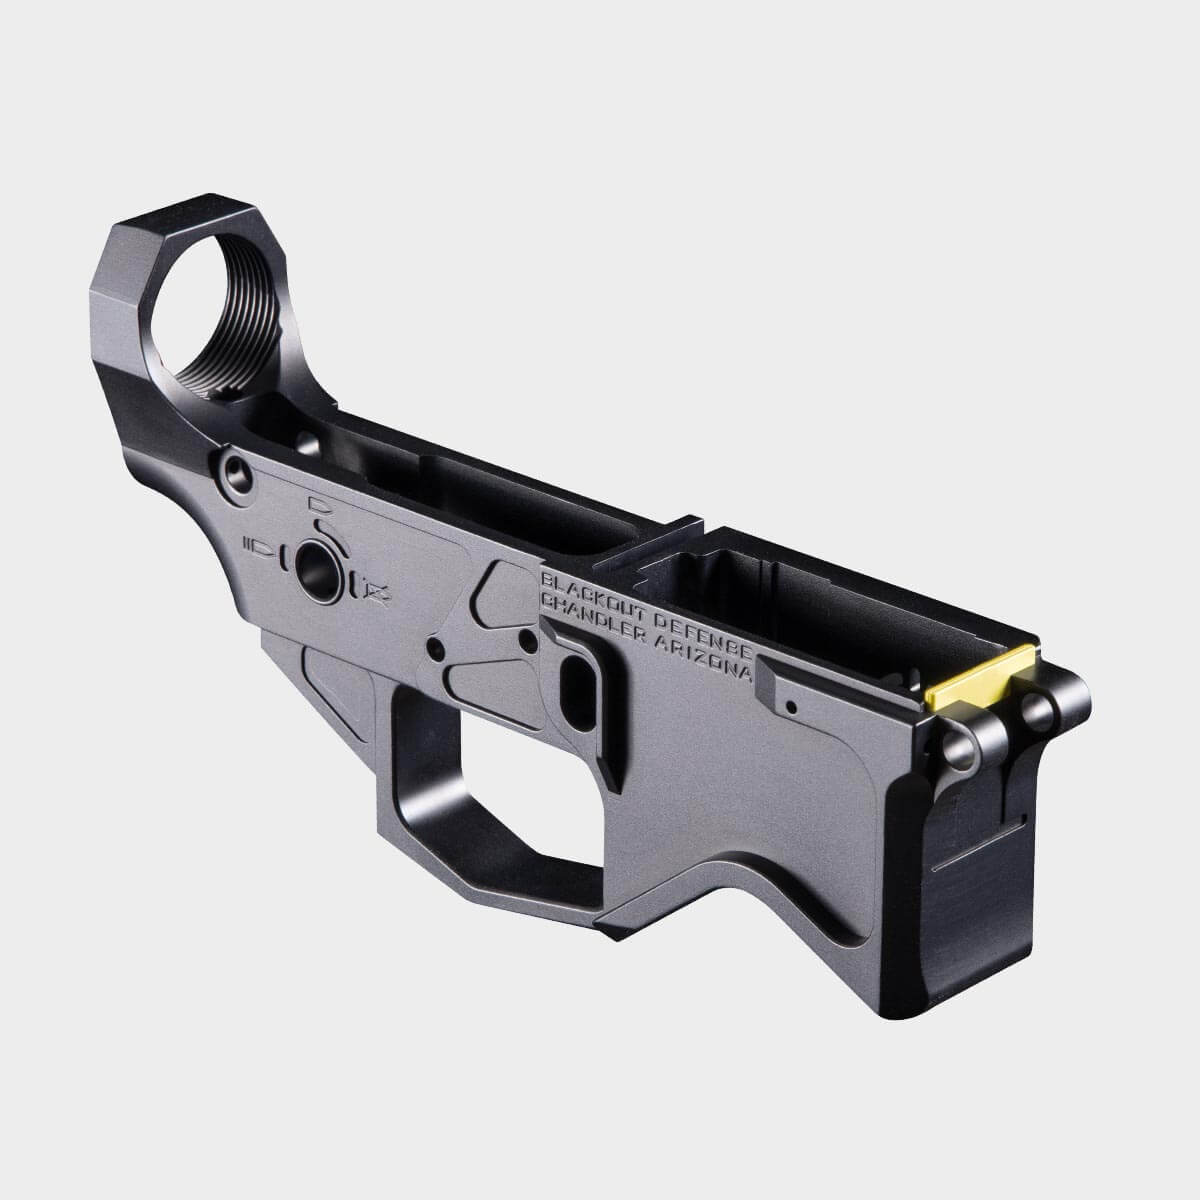 Mark 2 Stripped Lower Receiver